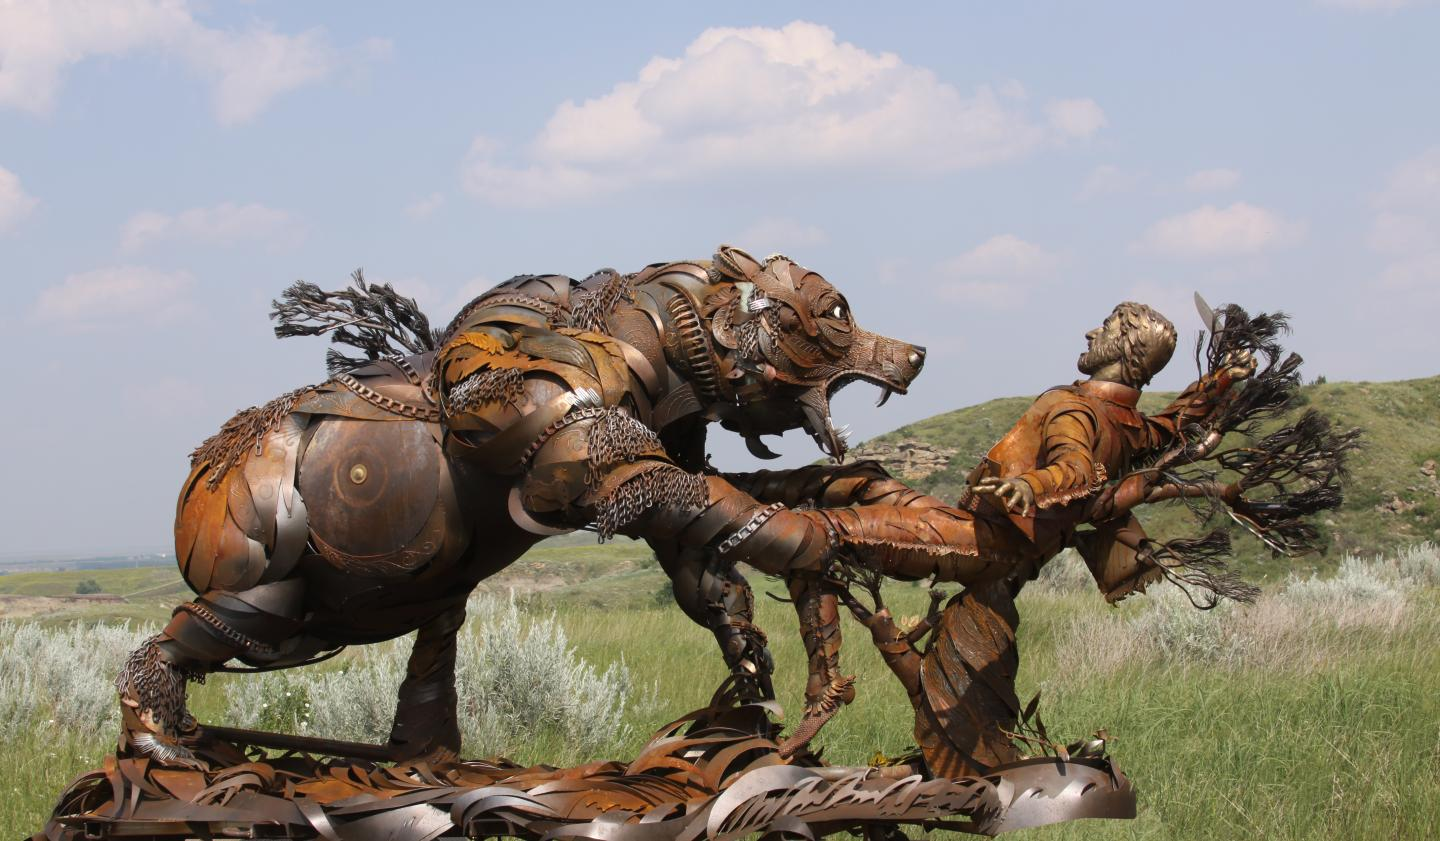 Hugh Glass sculpture by John Lopez